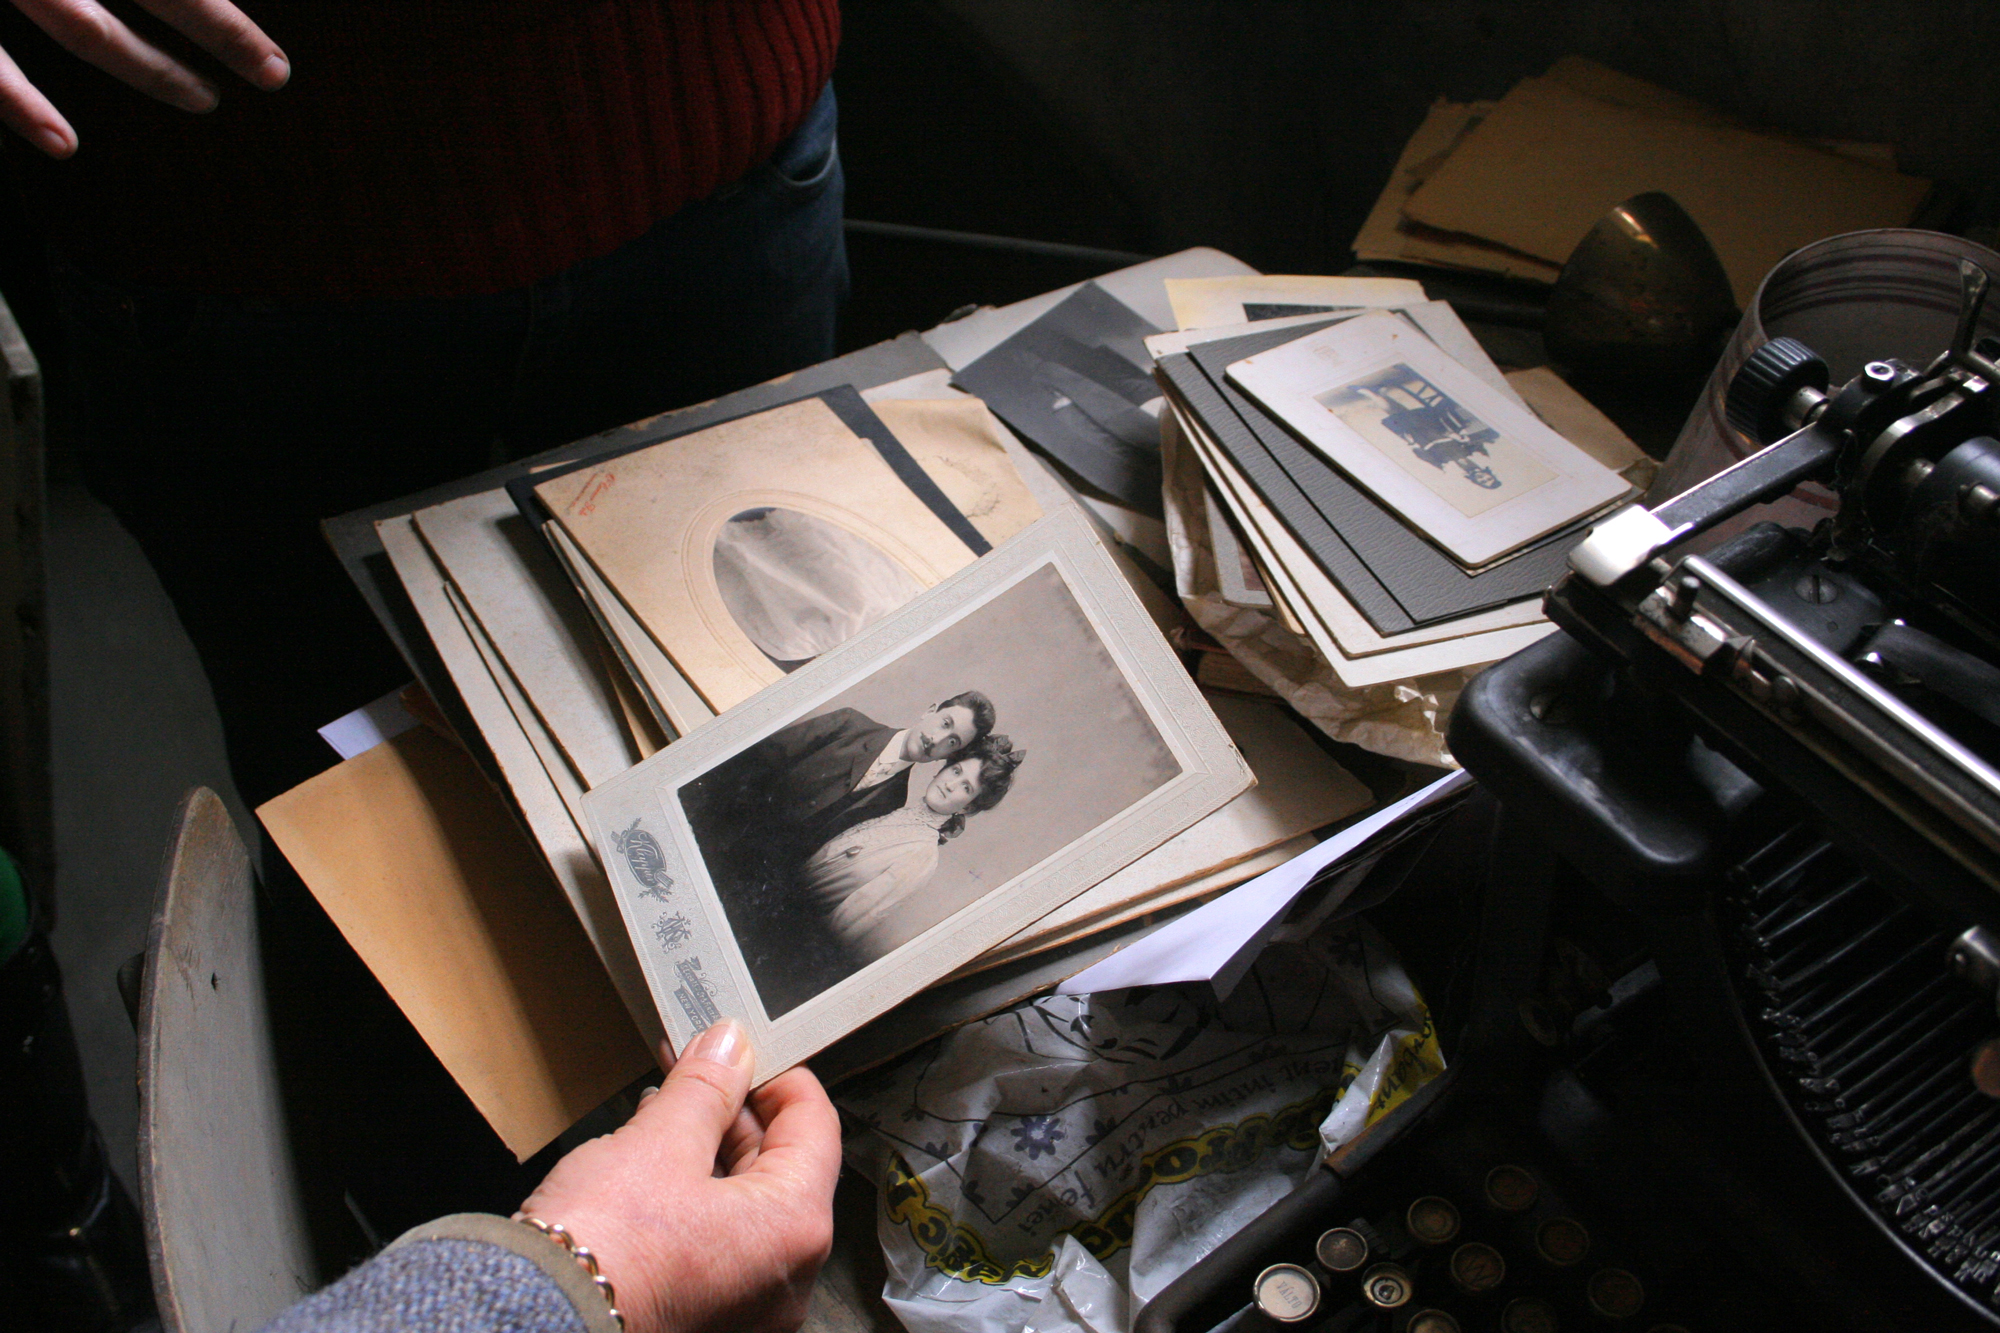 Photos collected in the archive of the Mediaș synagogue, Romania – Photo by Michael Nork